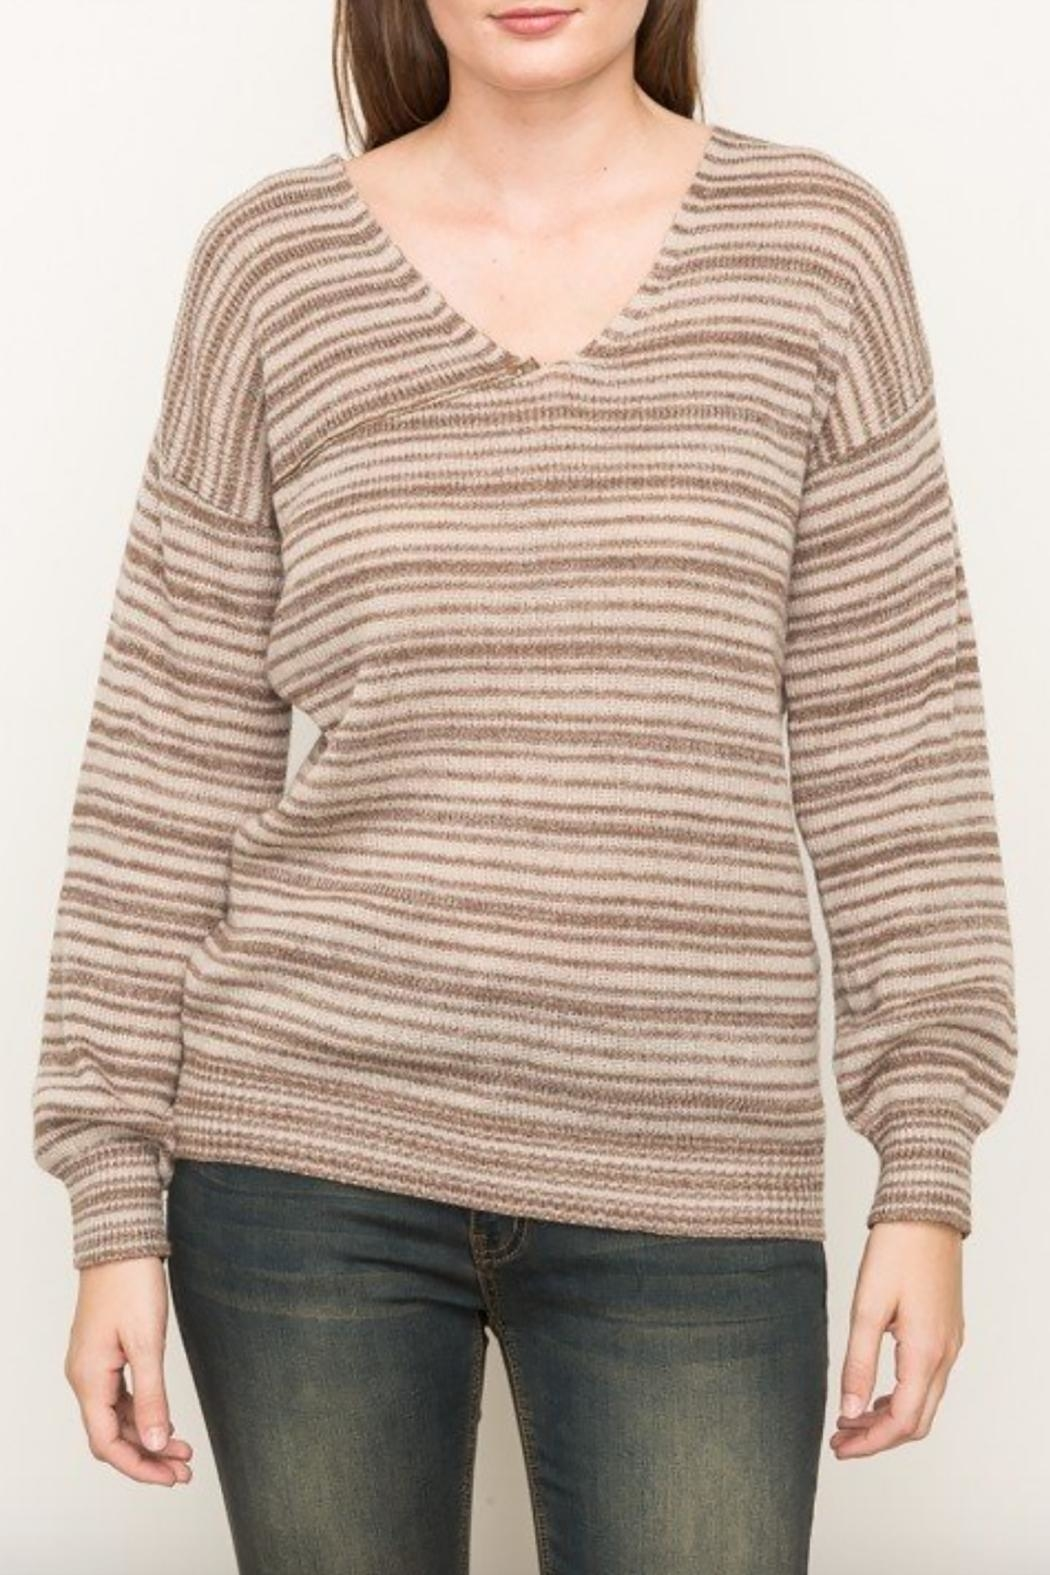 Mystree Striped V Neck Sweater - Main Image